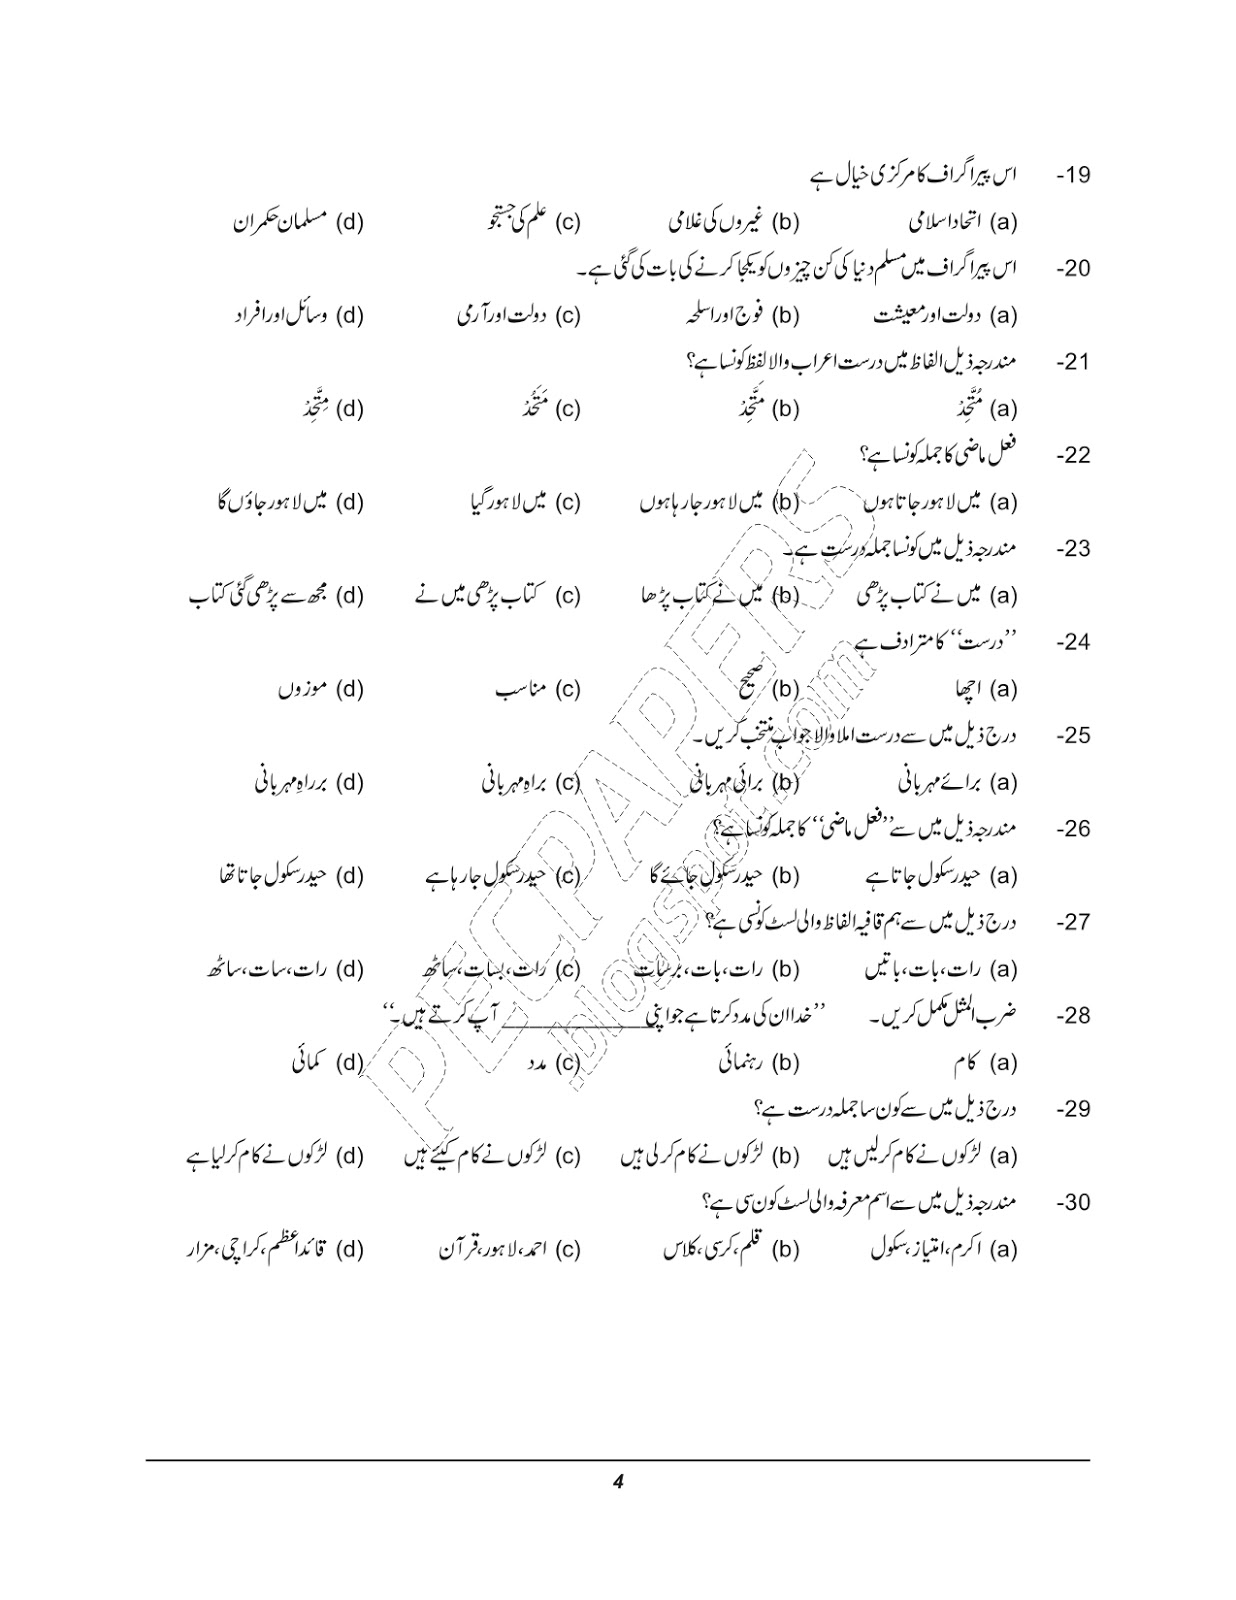 medium resolution of Essay about book and reading urdu